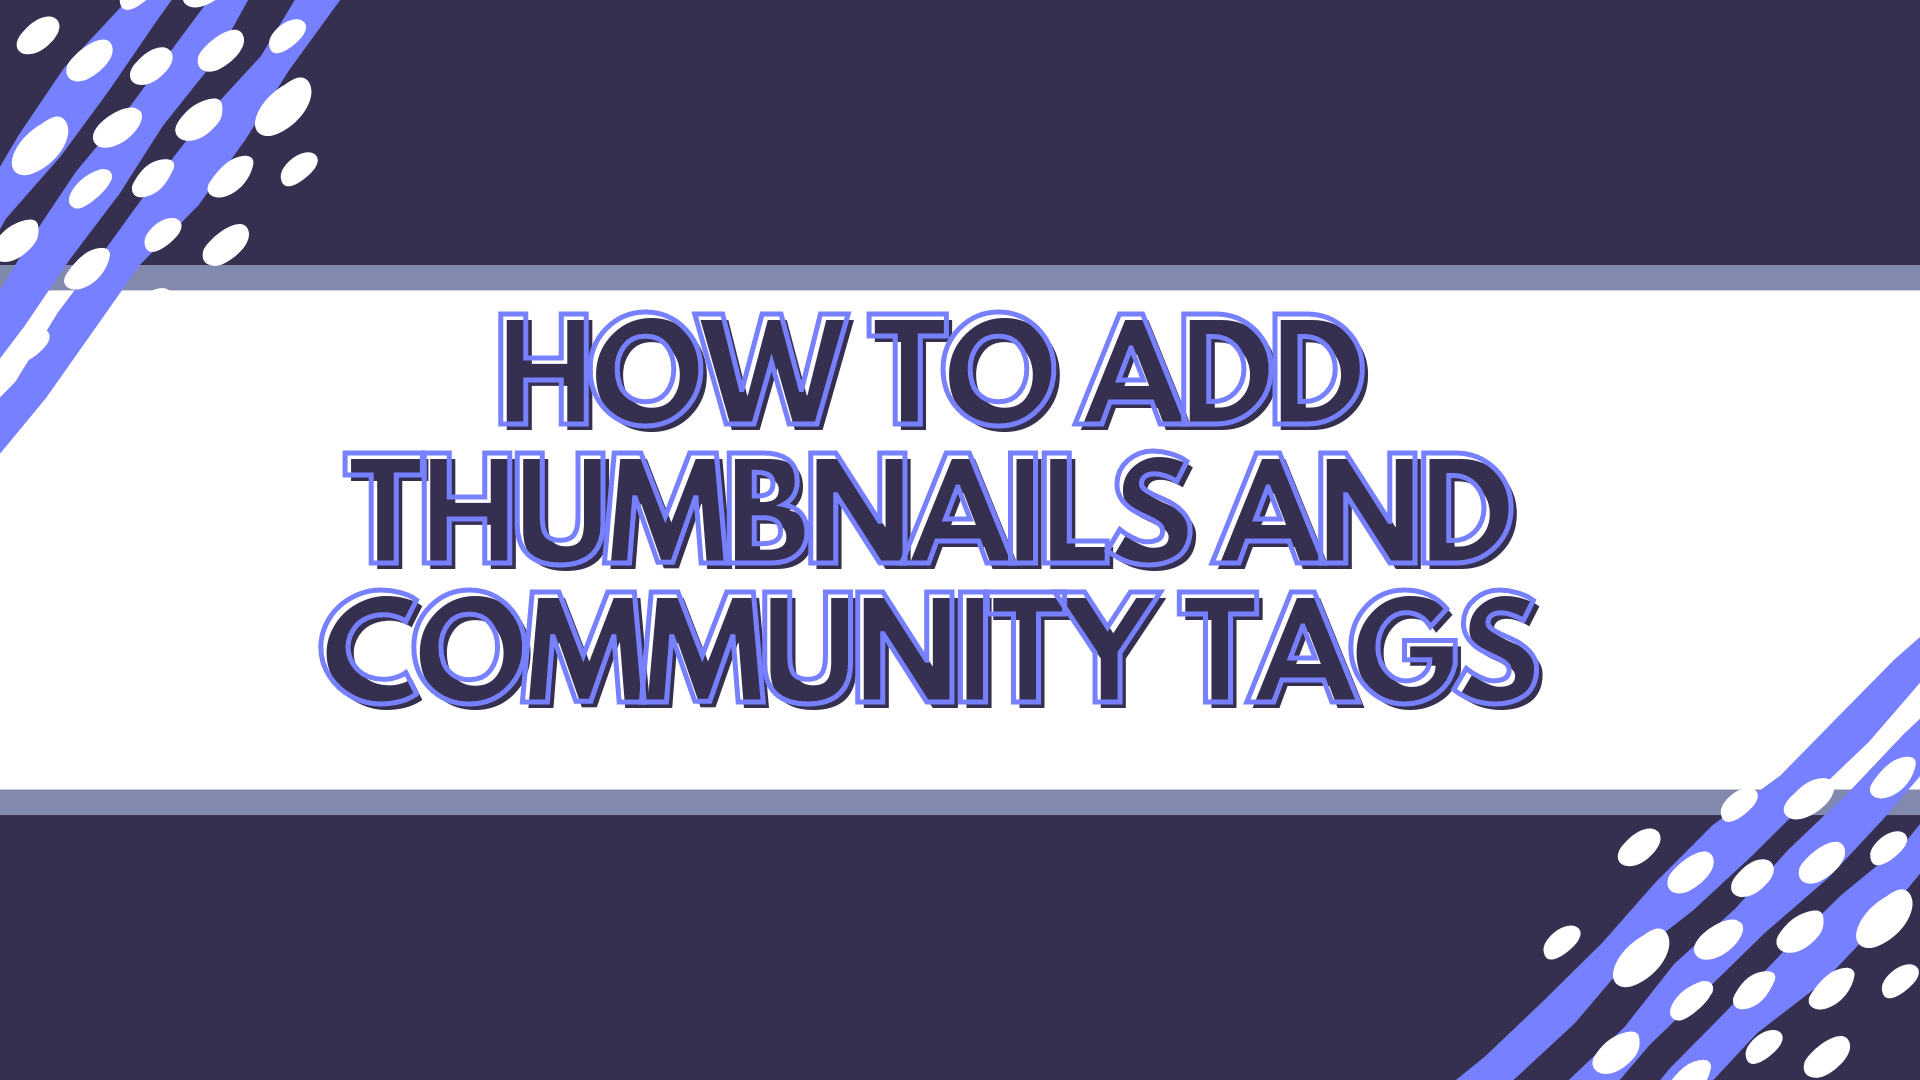 how to add thumbnails and community tags